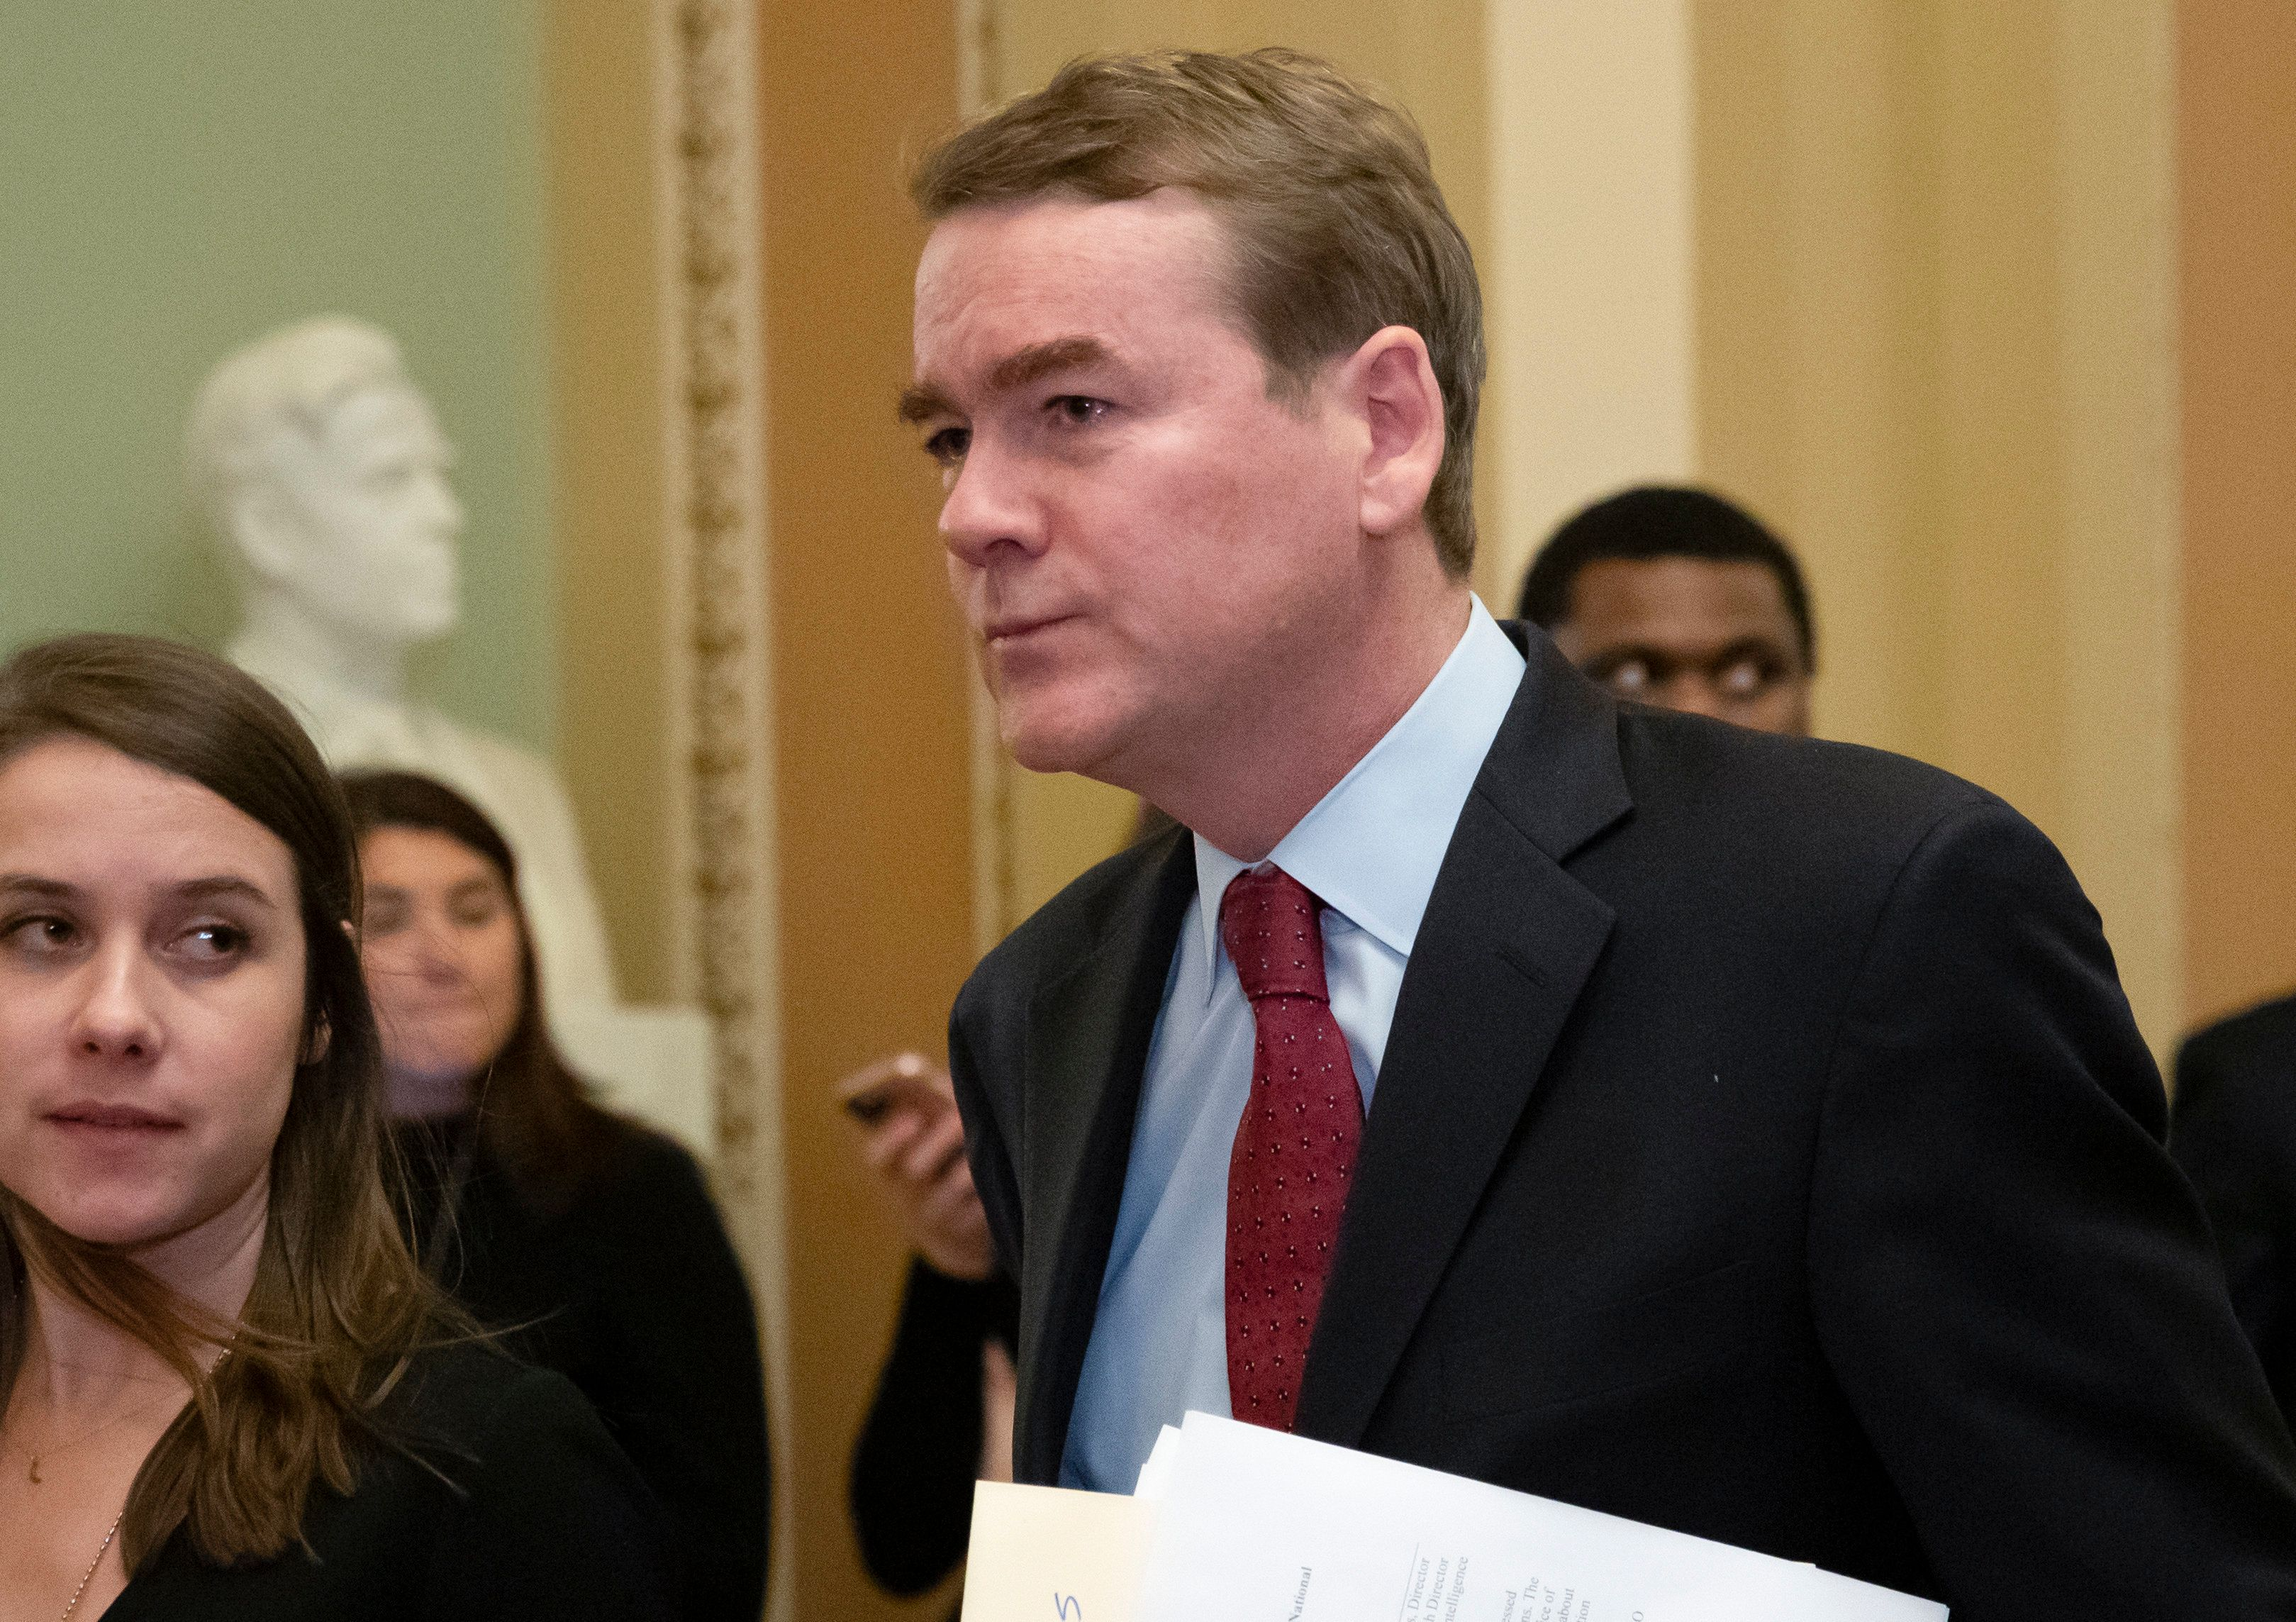 FILE - In this Jan. 24, 2019, file photo, Sen. Michael Bennet, D-Colo., leaves the chamber at the Capitol in Washington. Bennet says he has been diagnosed with prostate cancer as he considers a 2020 Democratic presidential bid (AP Photo/J. Scott Applewhite)